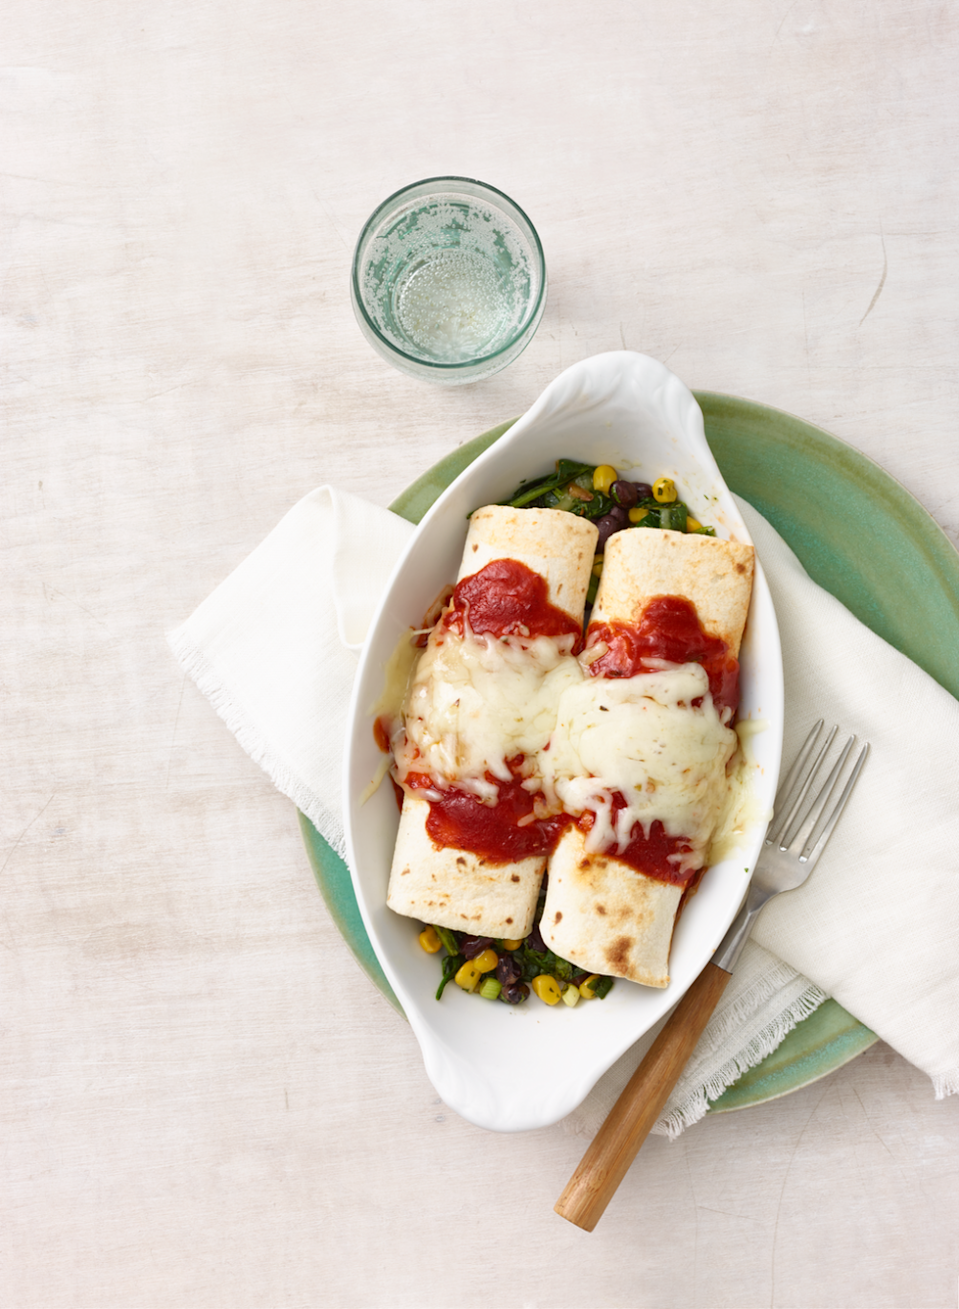 "<p>No meat needed in this vegetarian-friendly enchilada.</p><p><em><a href=""https://www.goodhousekeeping.com/food-recipes/a16370/black-bean-corn-spinach-enchiladas-recipe-wdy0315/"" rel=""nofollow noopener"" target=""_blank"" data-ylk=""slk:Get the recipe for Black Bean, Corn, and Spinach Enchiladas »"" class=""link rapid-noclick-resp"">Get the recipe for Black Bean, Corn, and Spinach Enchiladas » </a></em><br></p>"